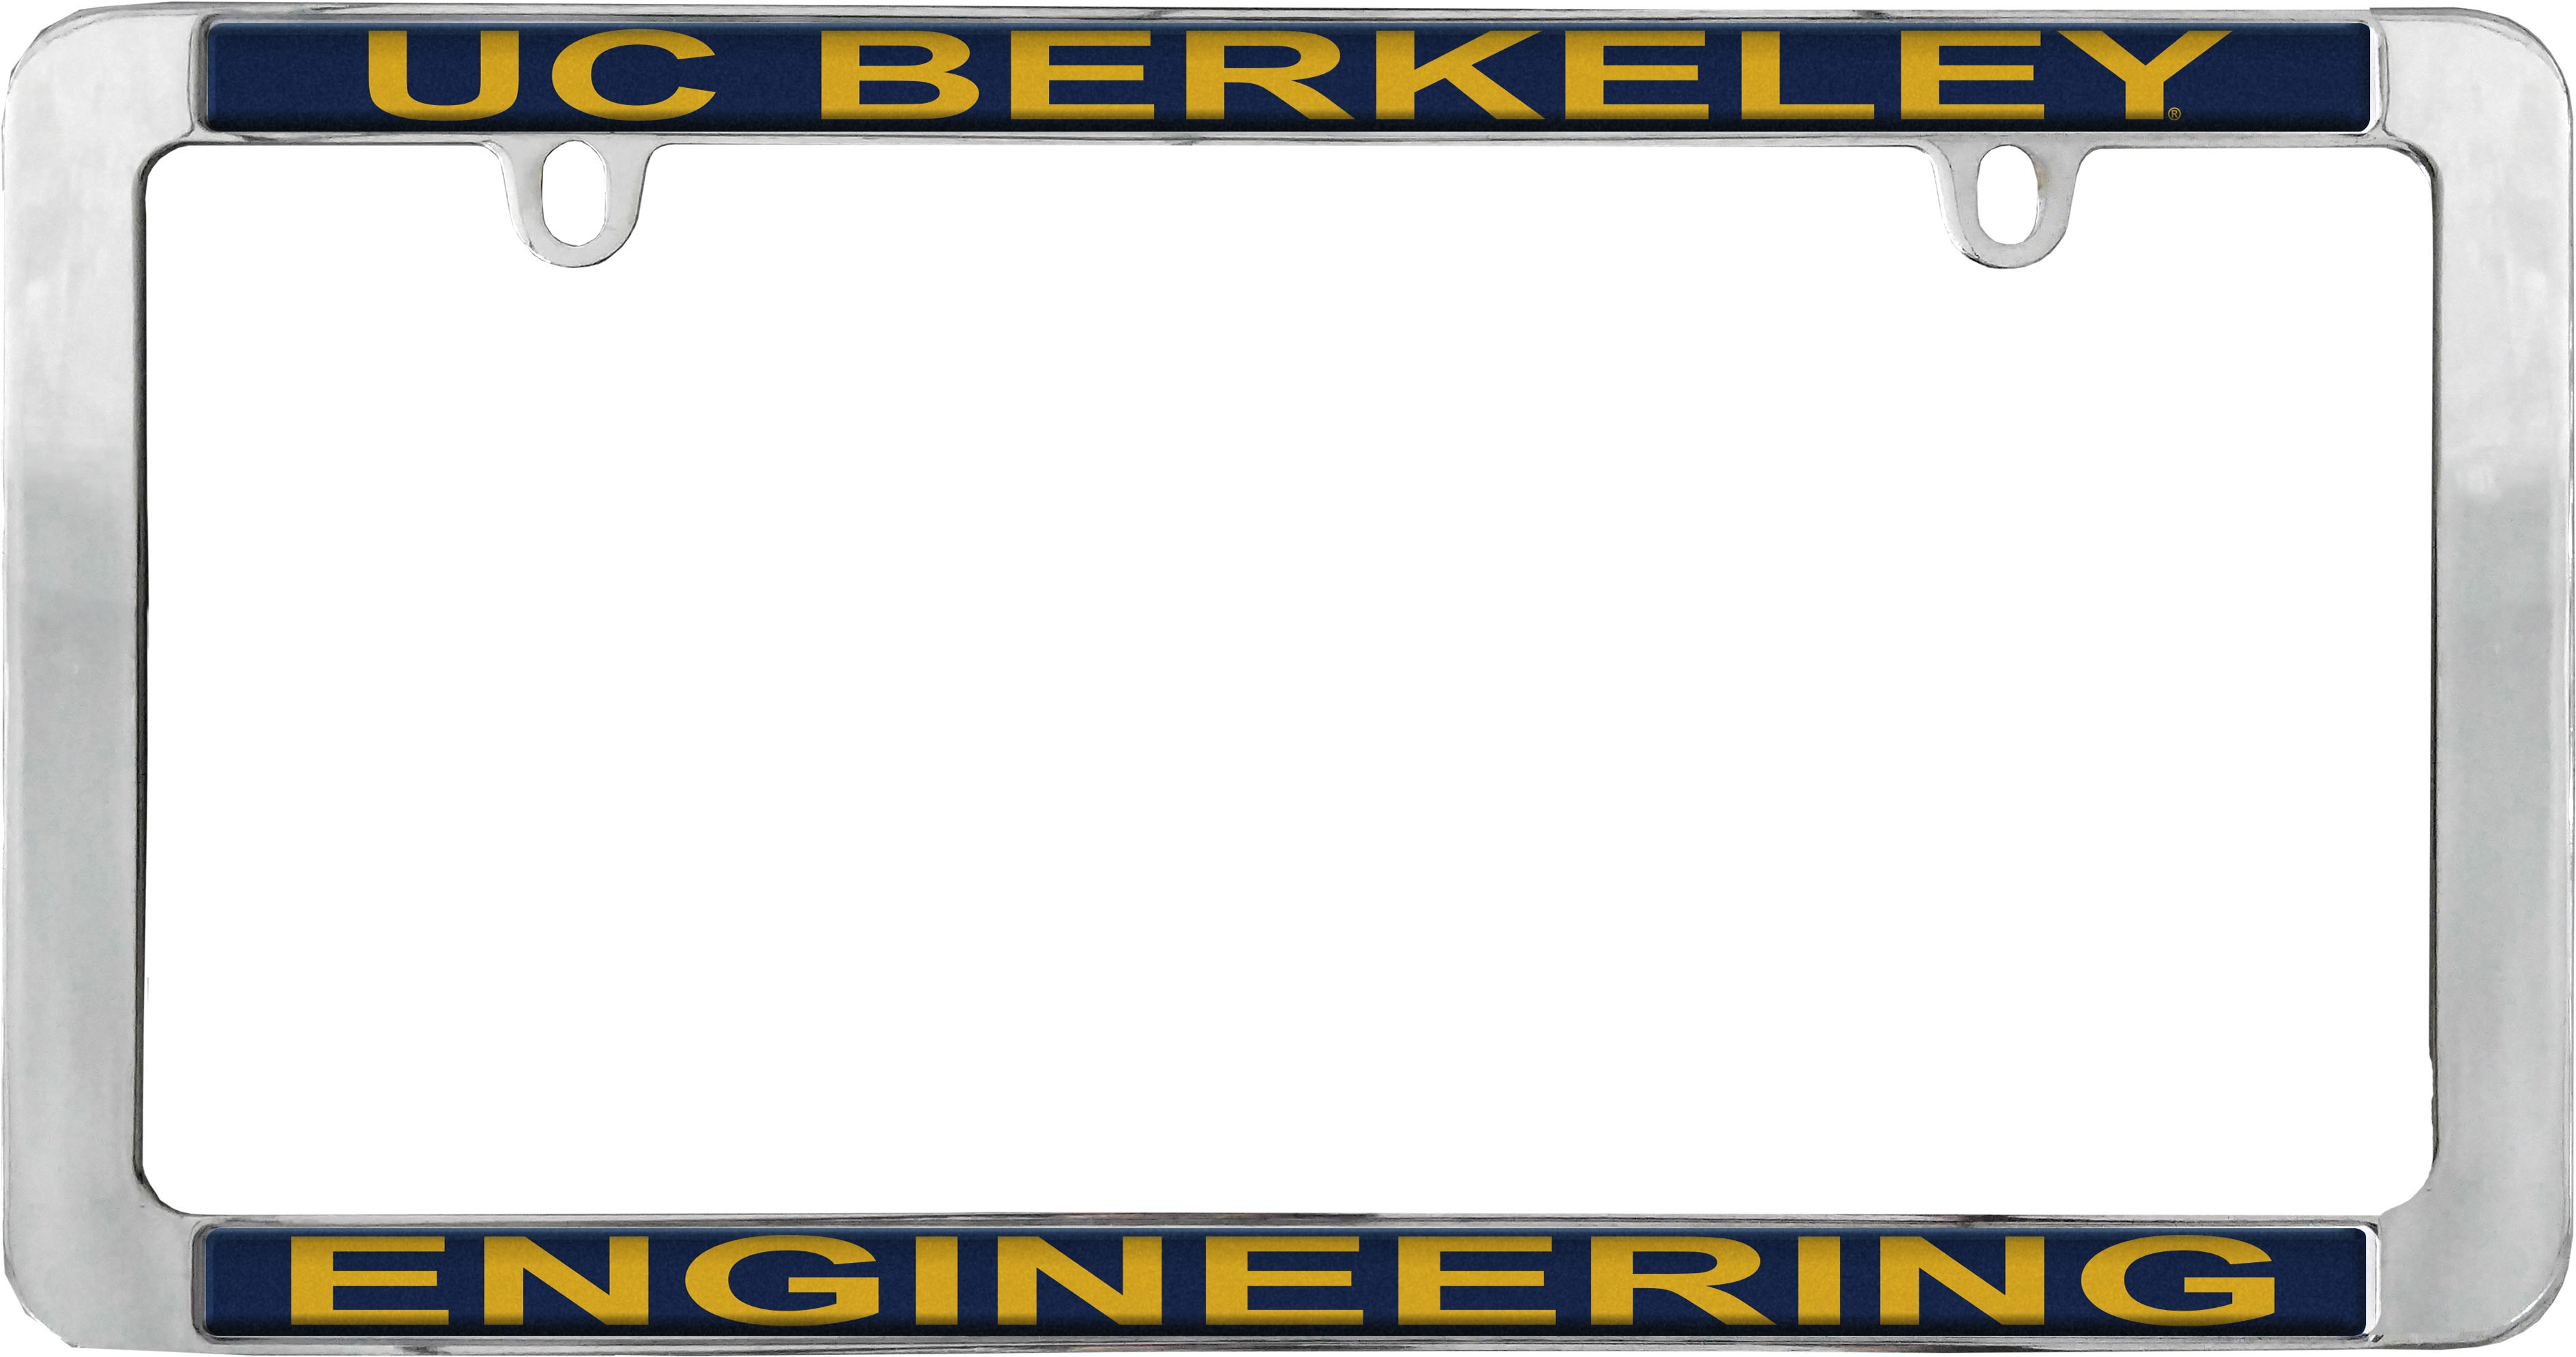 University of California Berkeley License Plate Frame Engineering